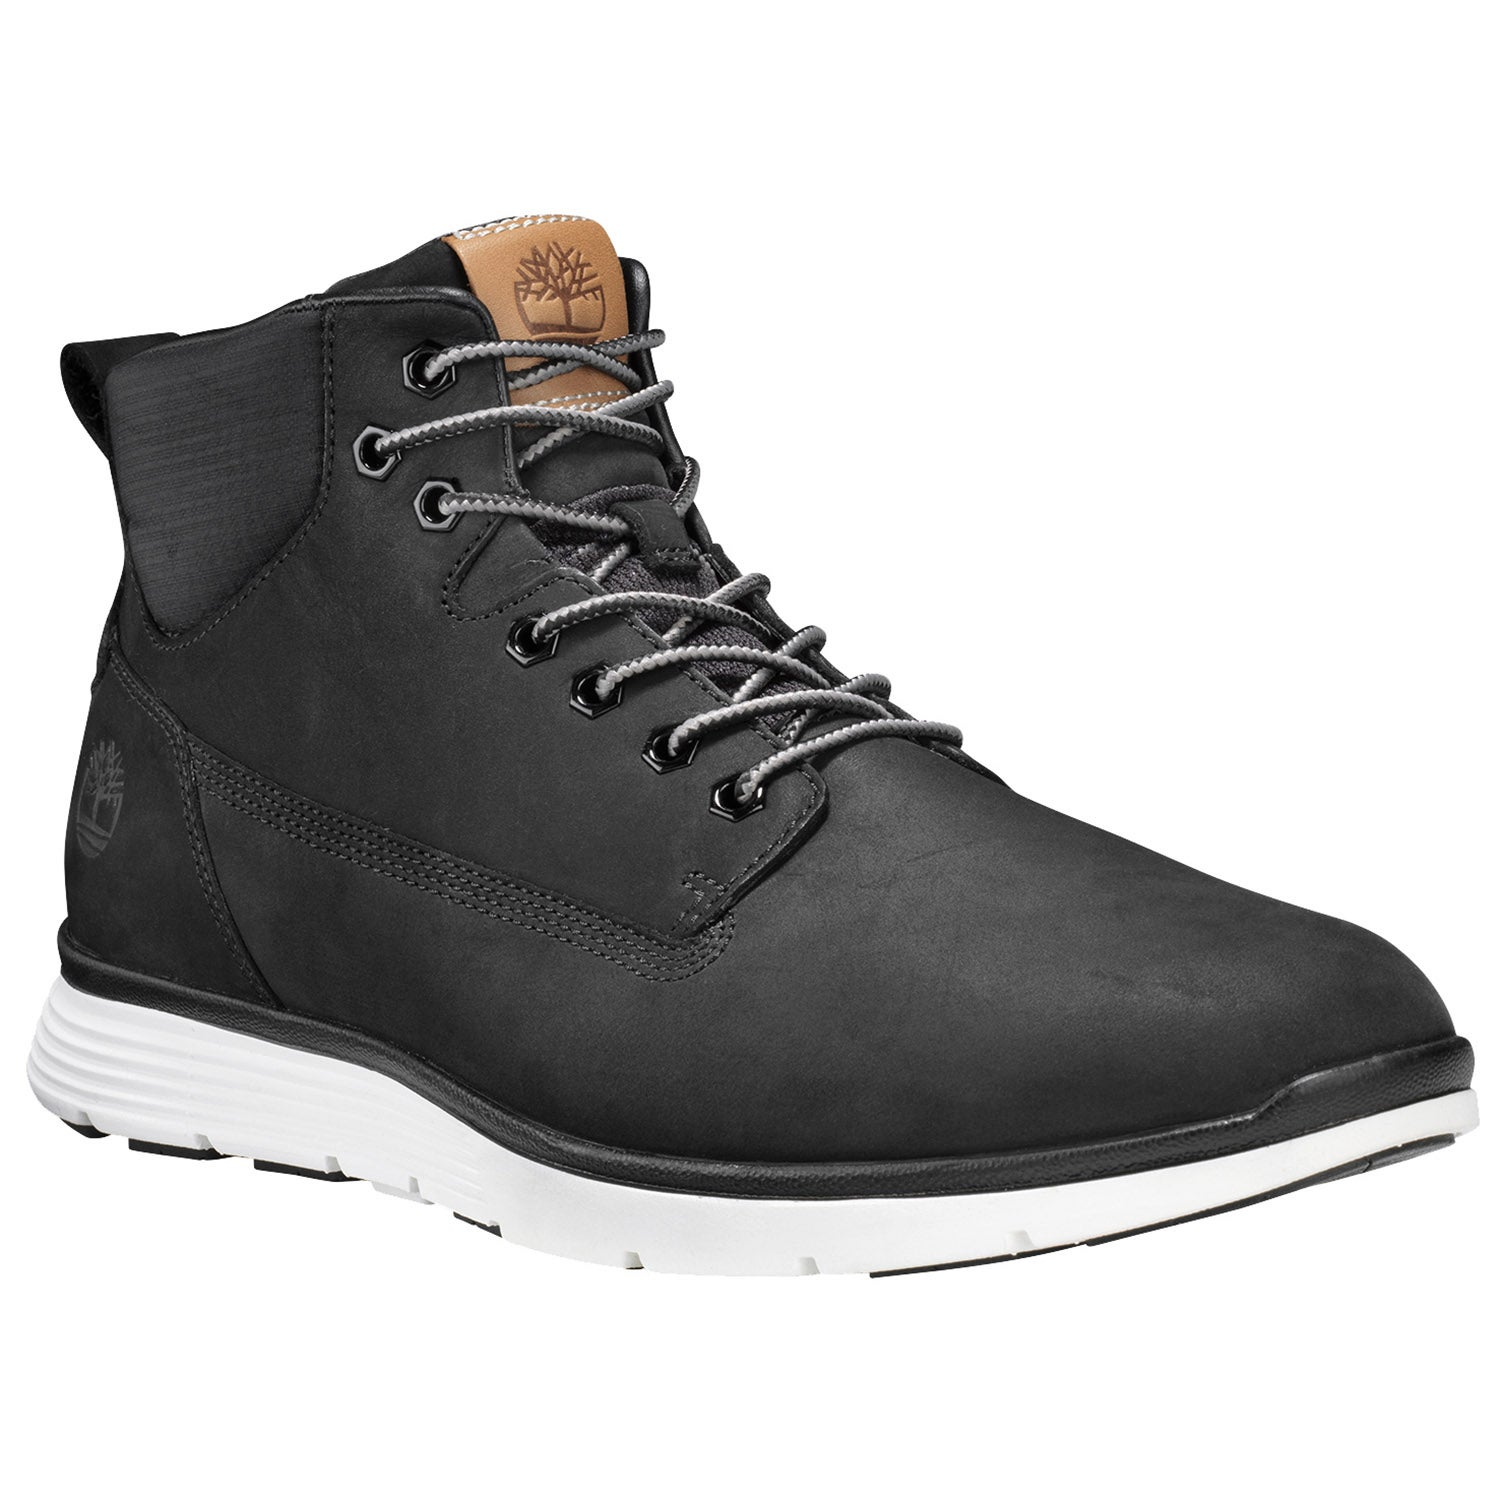 Details about Mens Timberland Killington Chukka Boots Black Nubuck Boots